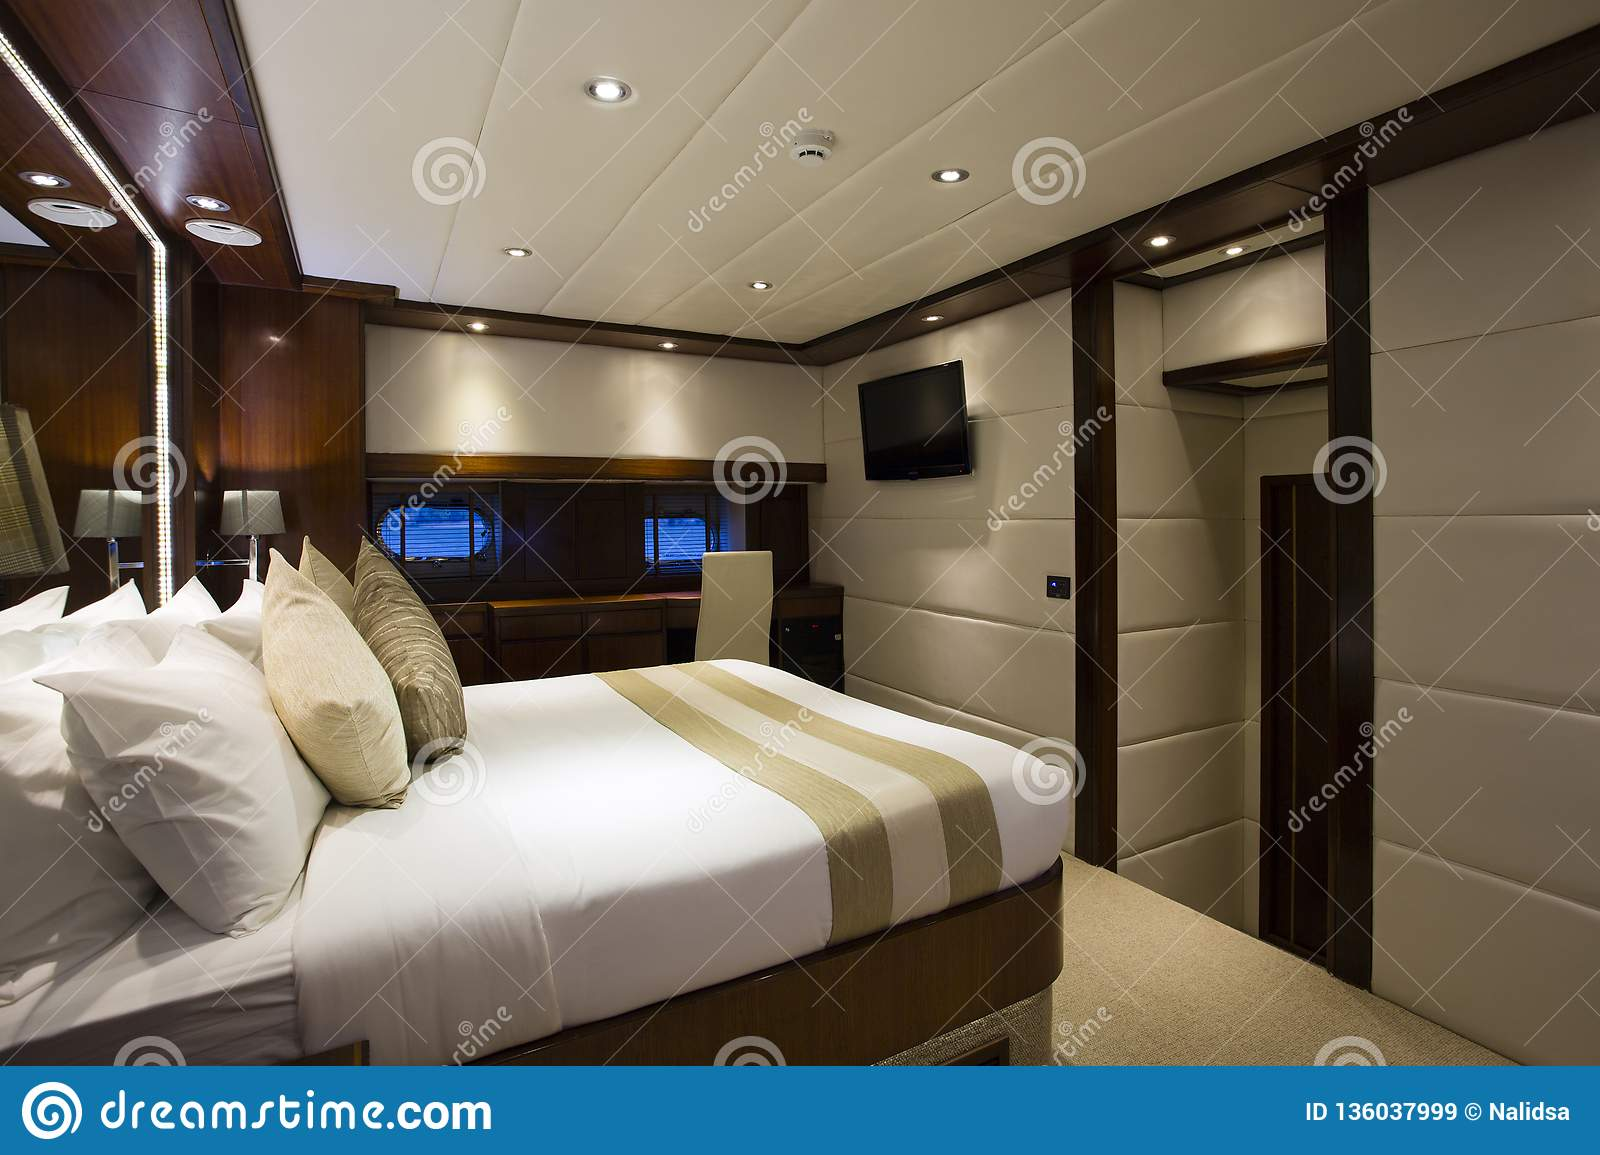 Yacht Interior Bedroom Stock Image Image Of Motor Sheets 136037999